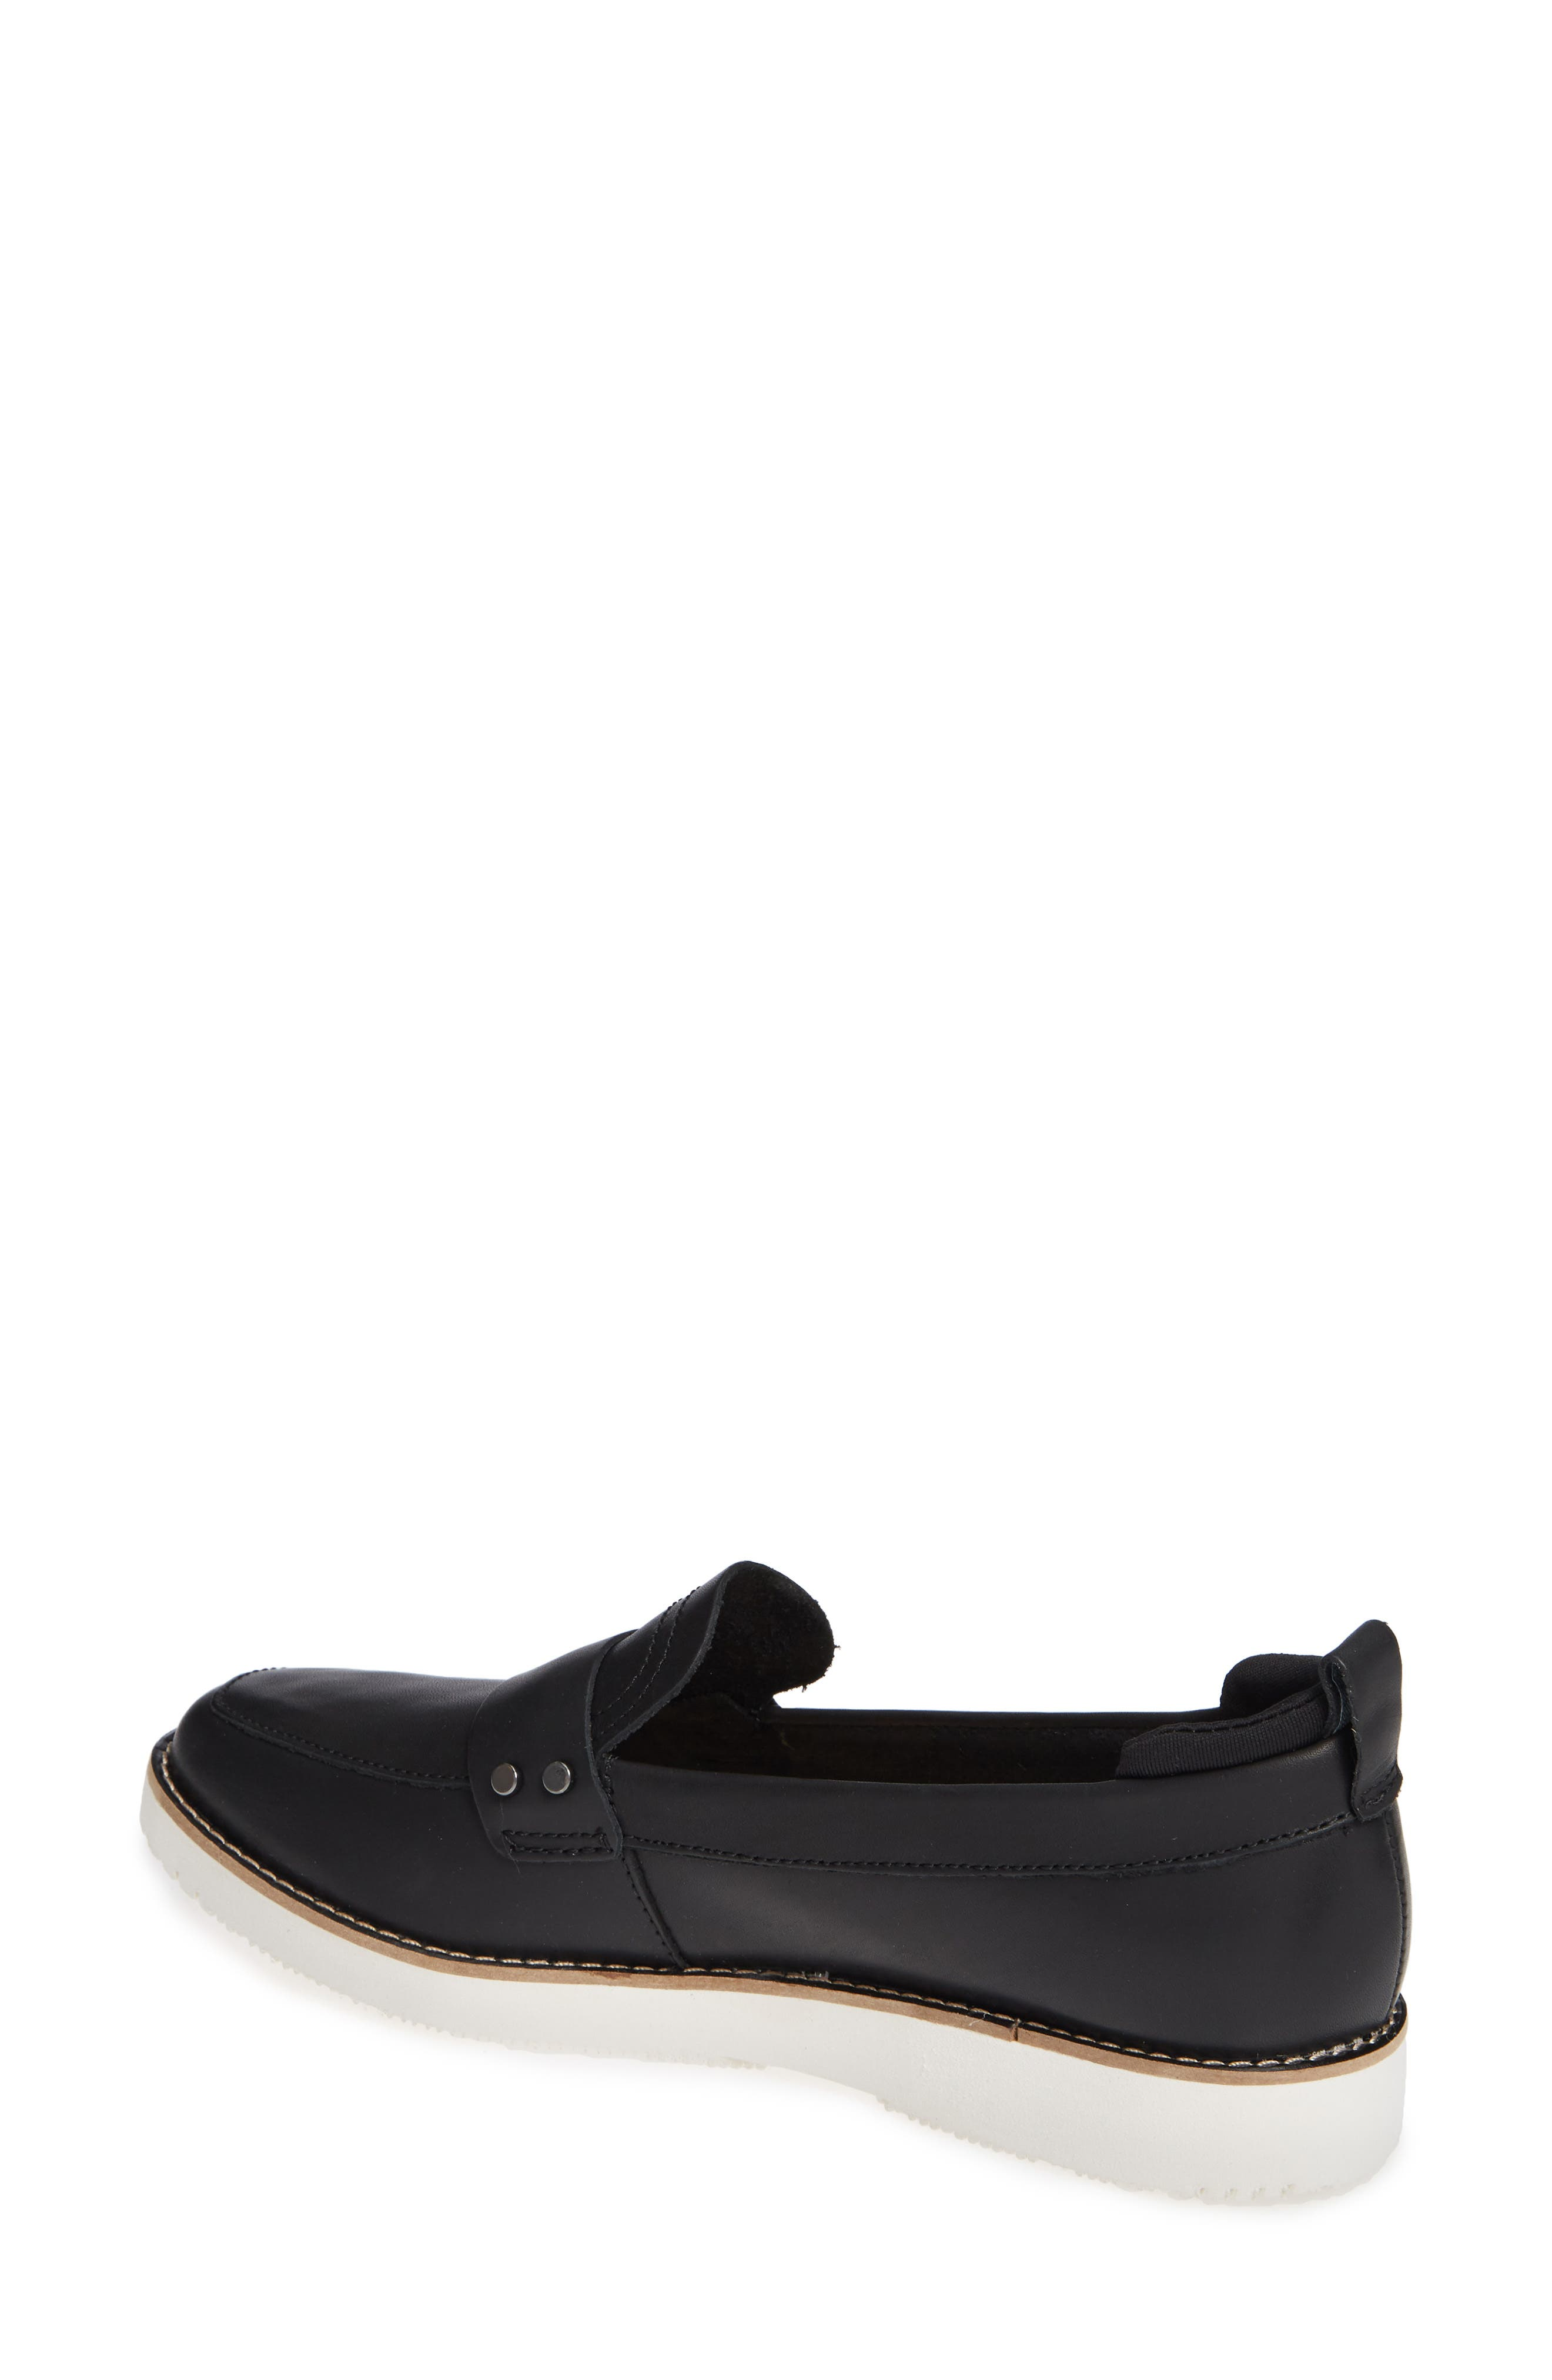 Chowchow Loafer,                             Alternate thumbnail 2, color,                             Black Leather